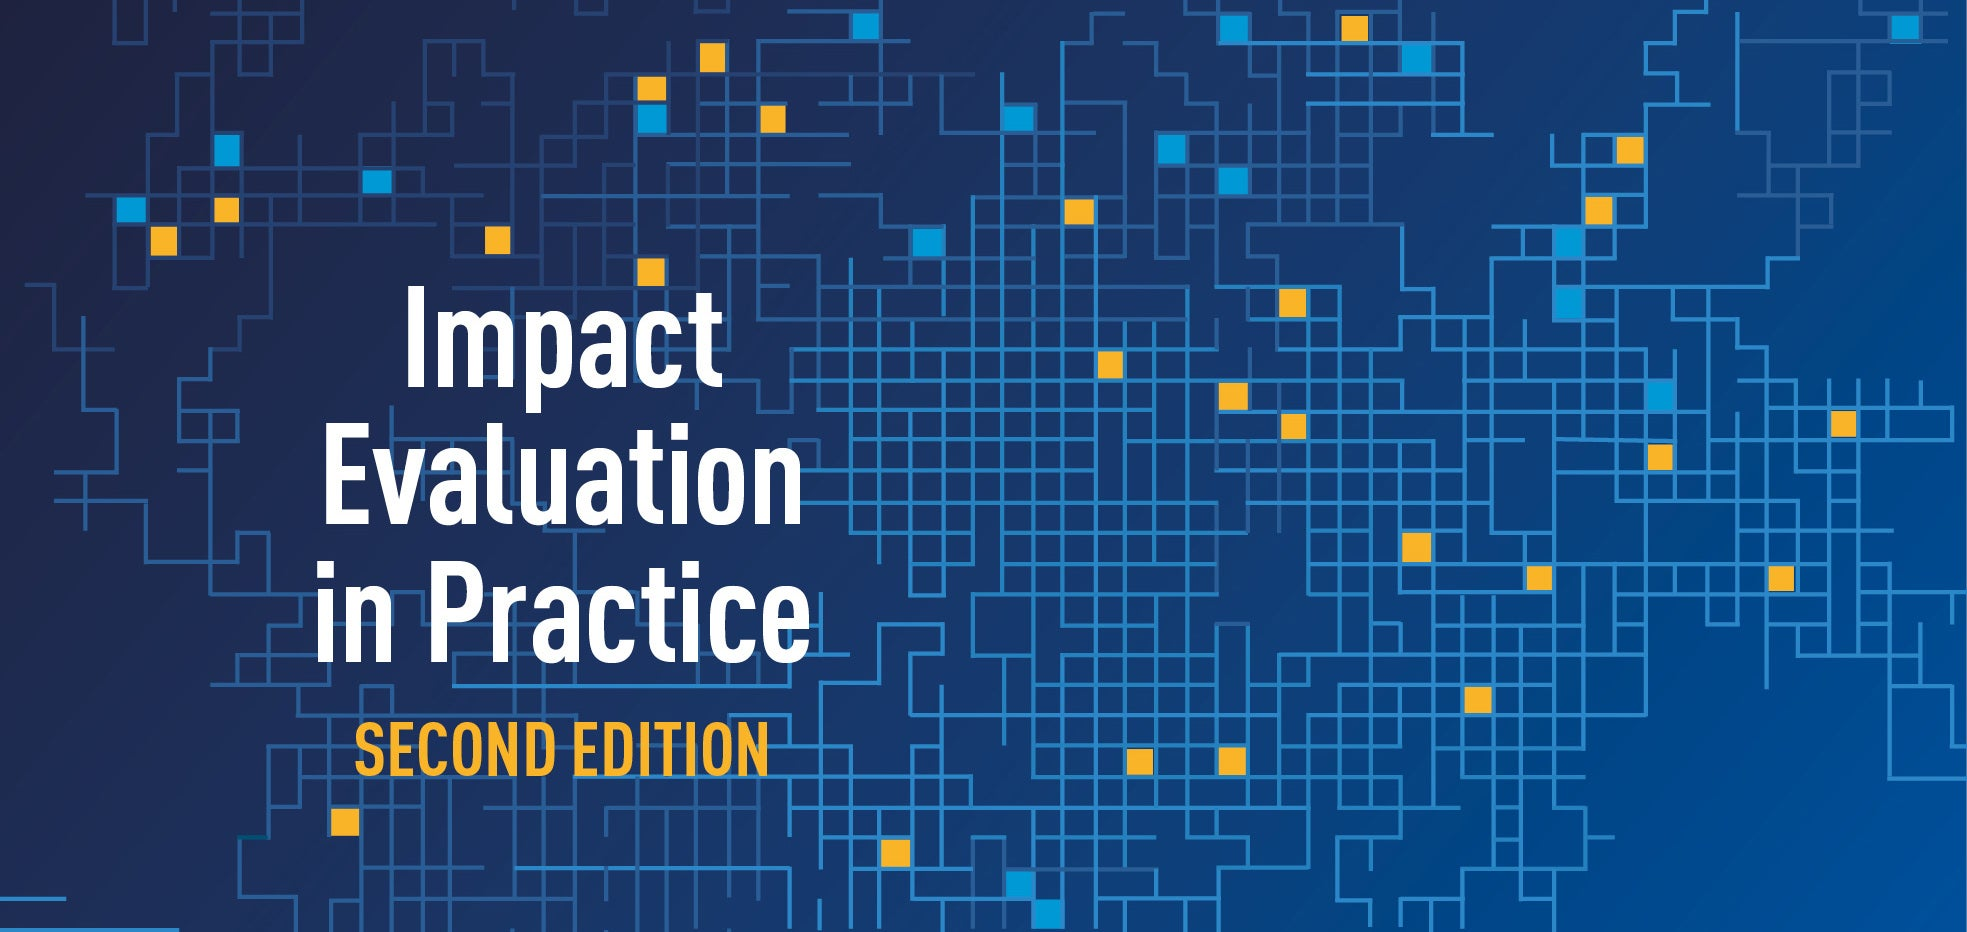 20170404 Impact Evaluation in Practice Book Second Edition